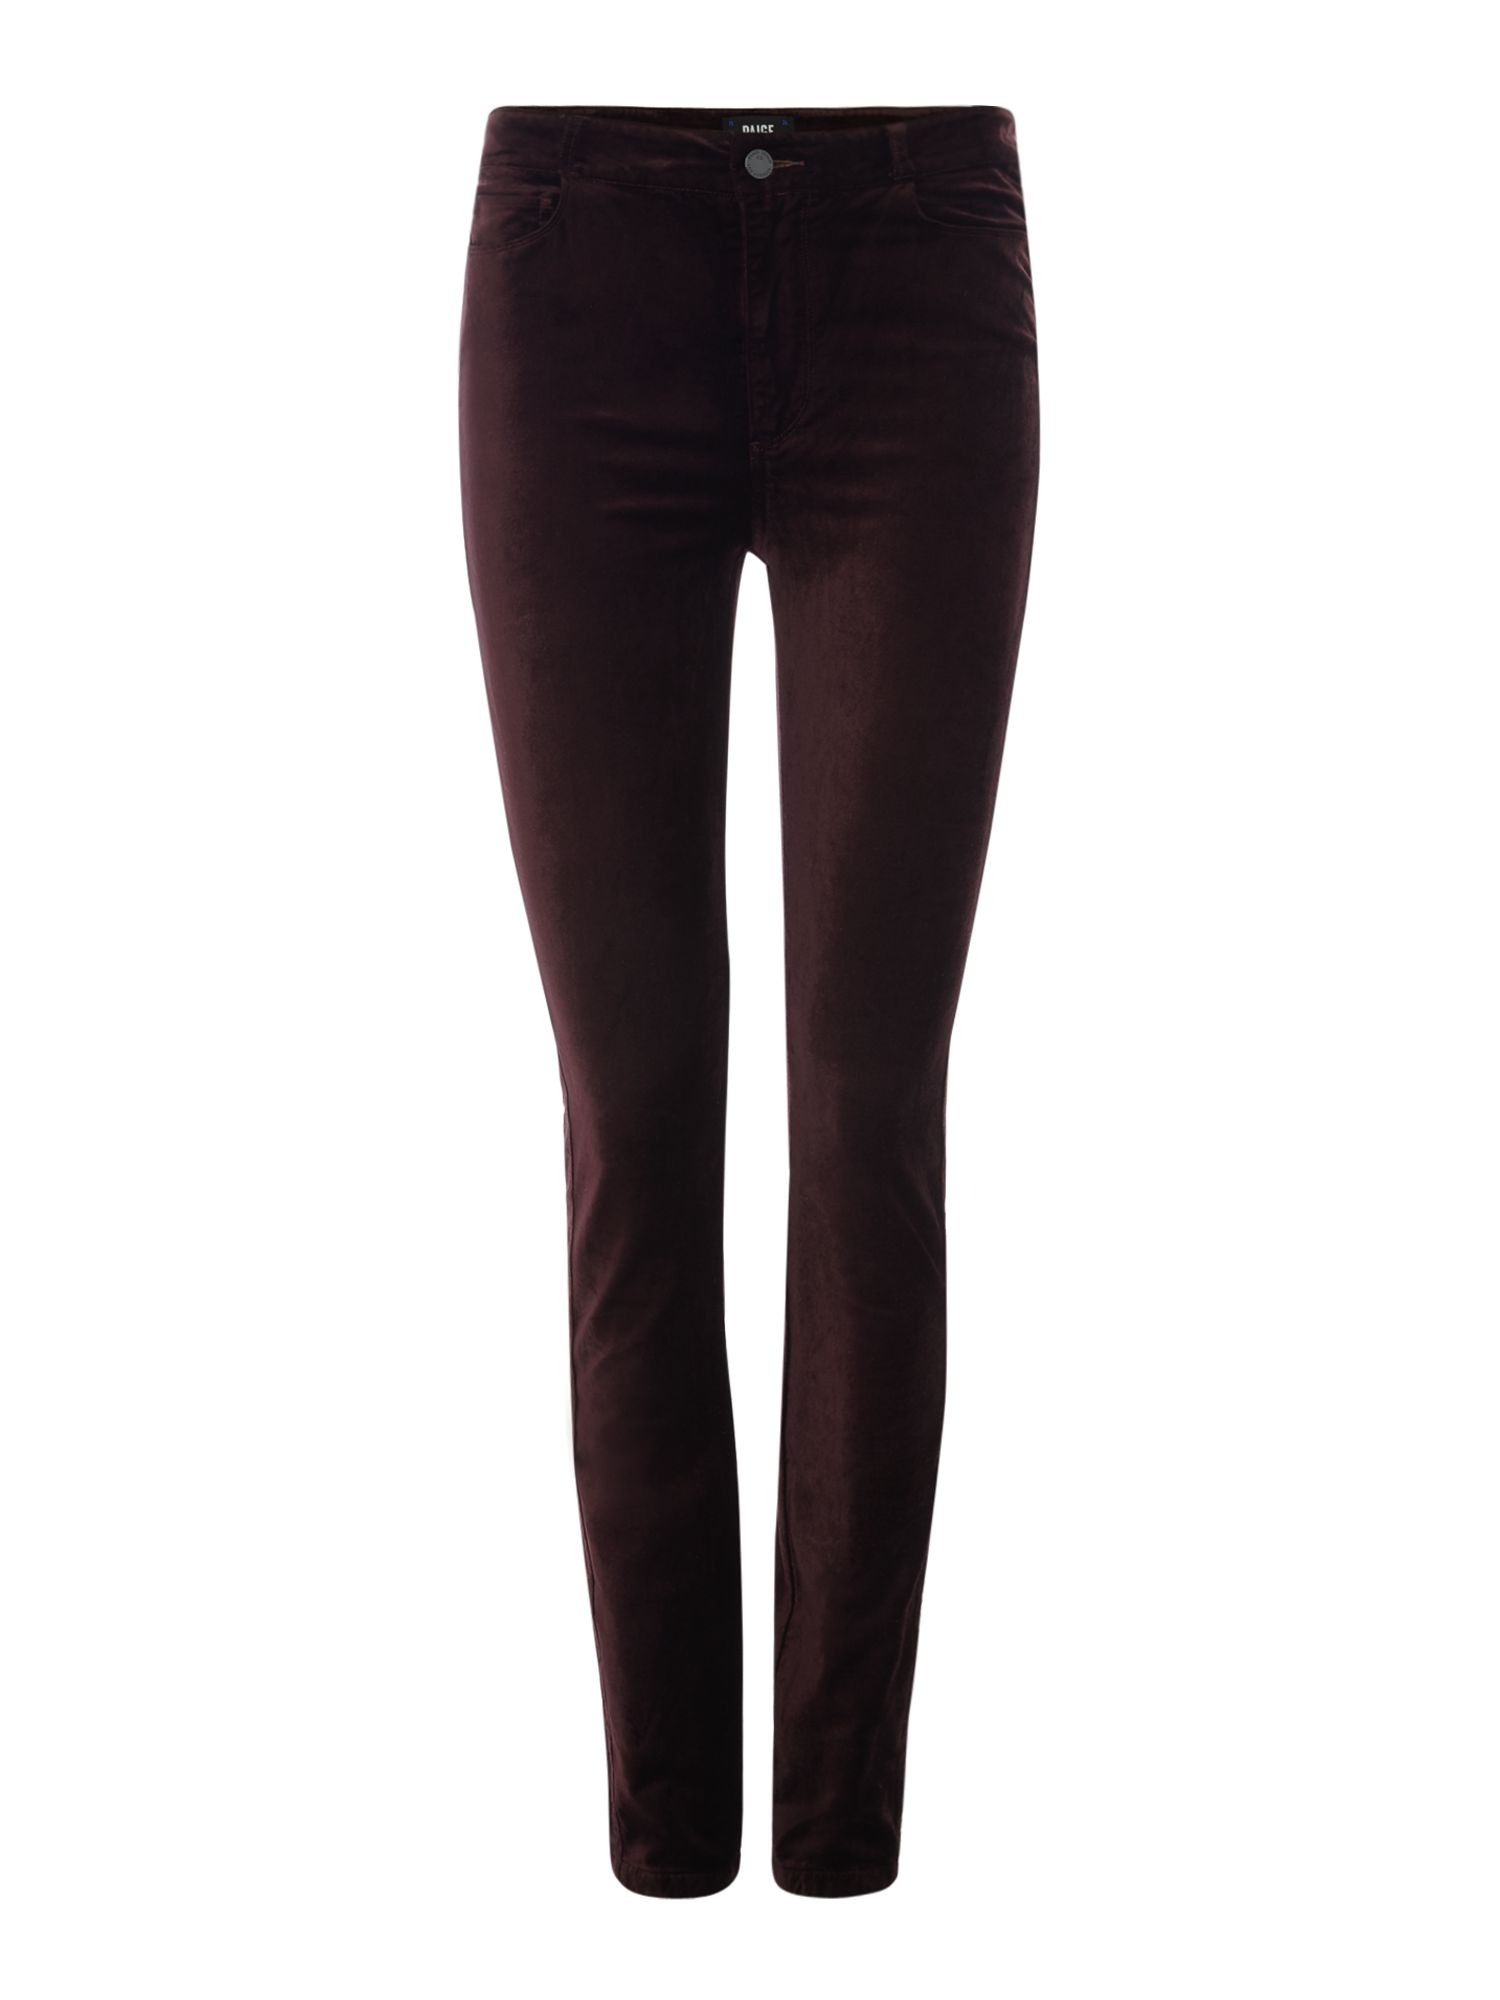 Hoxton Skinny Velvet Jeans In Black Cherry, Purple